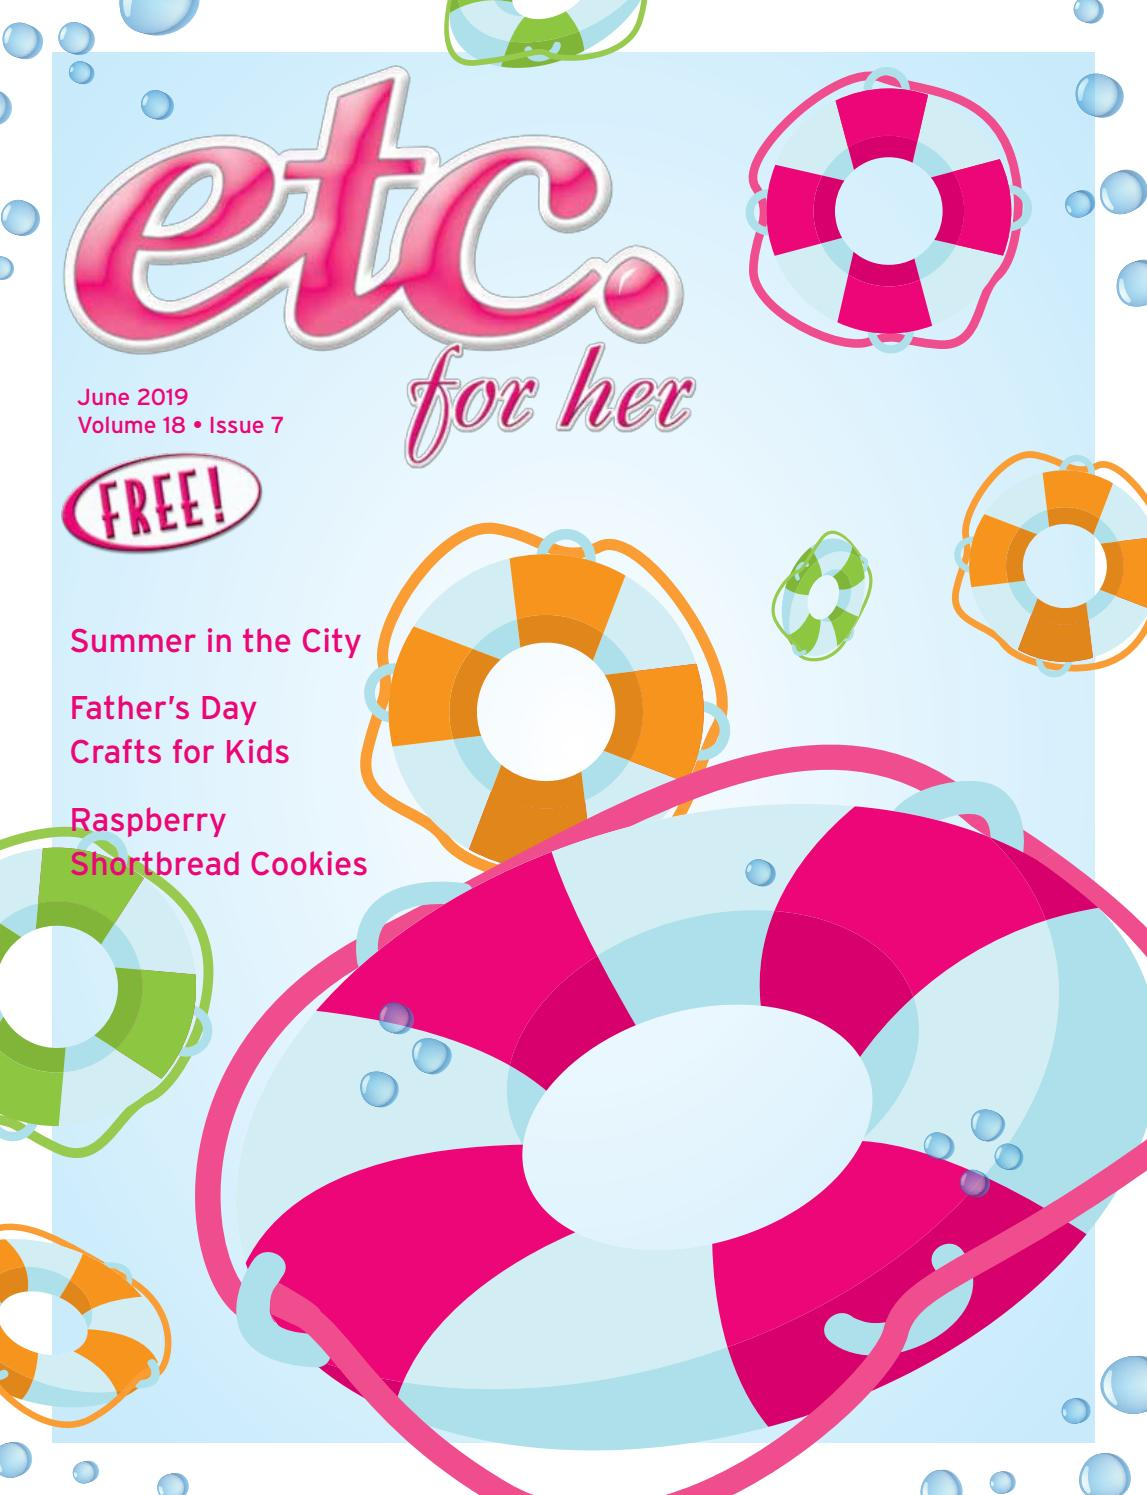 2019_06_EtcMagazine_Volume18_Issue07 by Sara Sullivan.